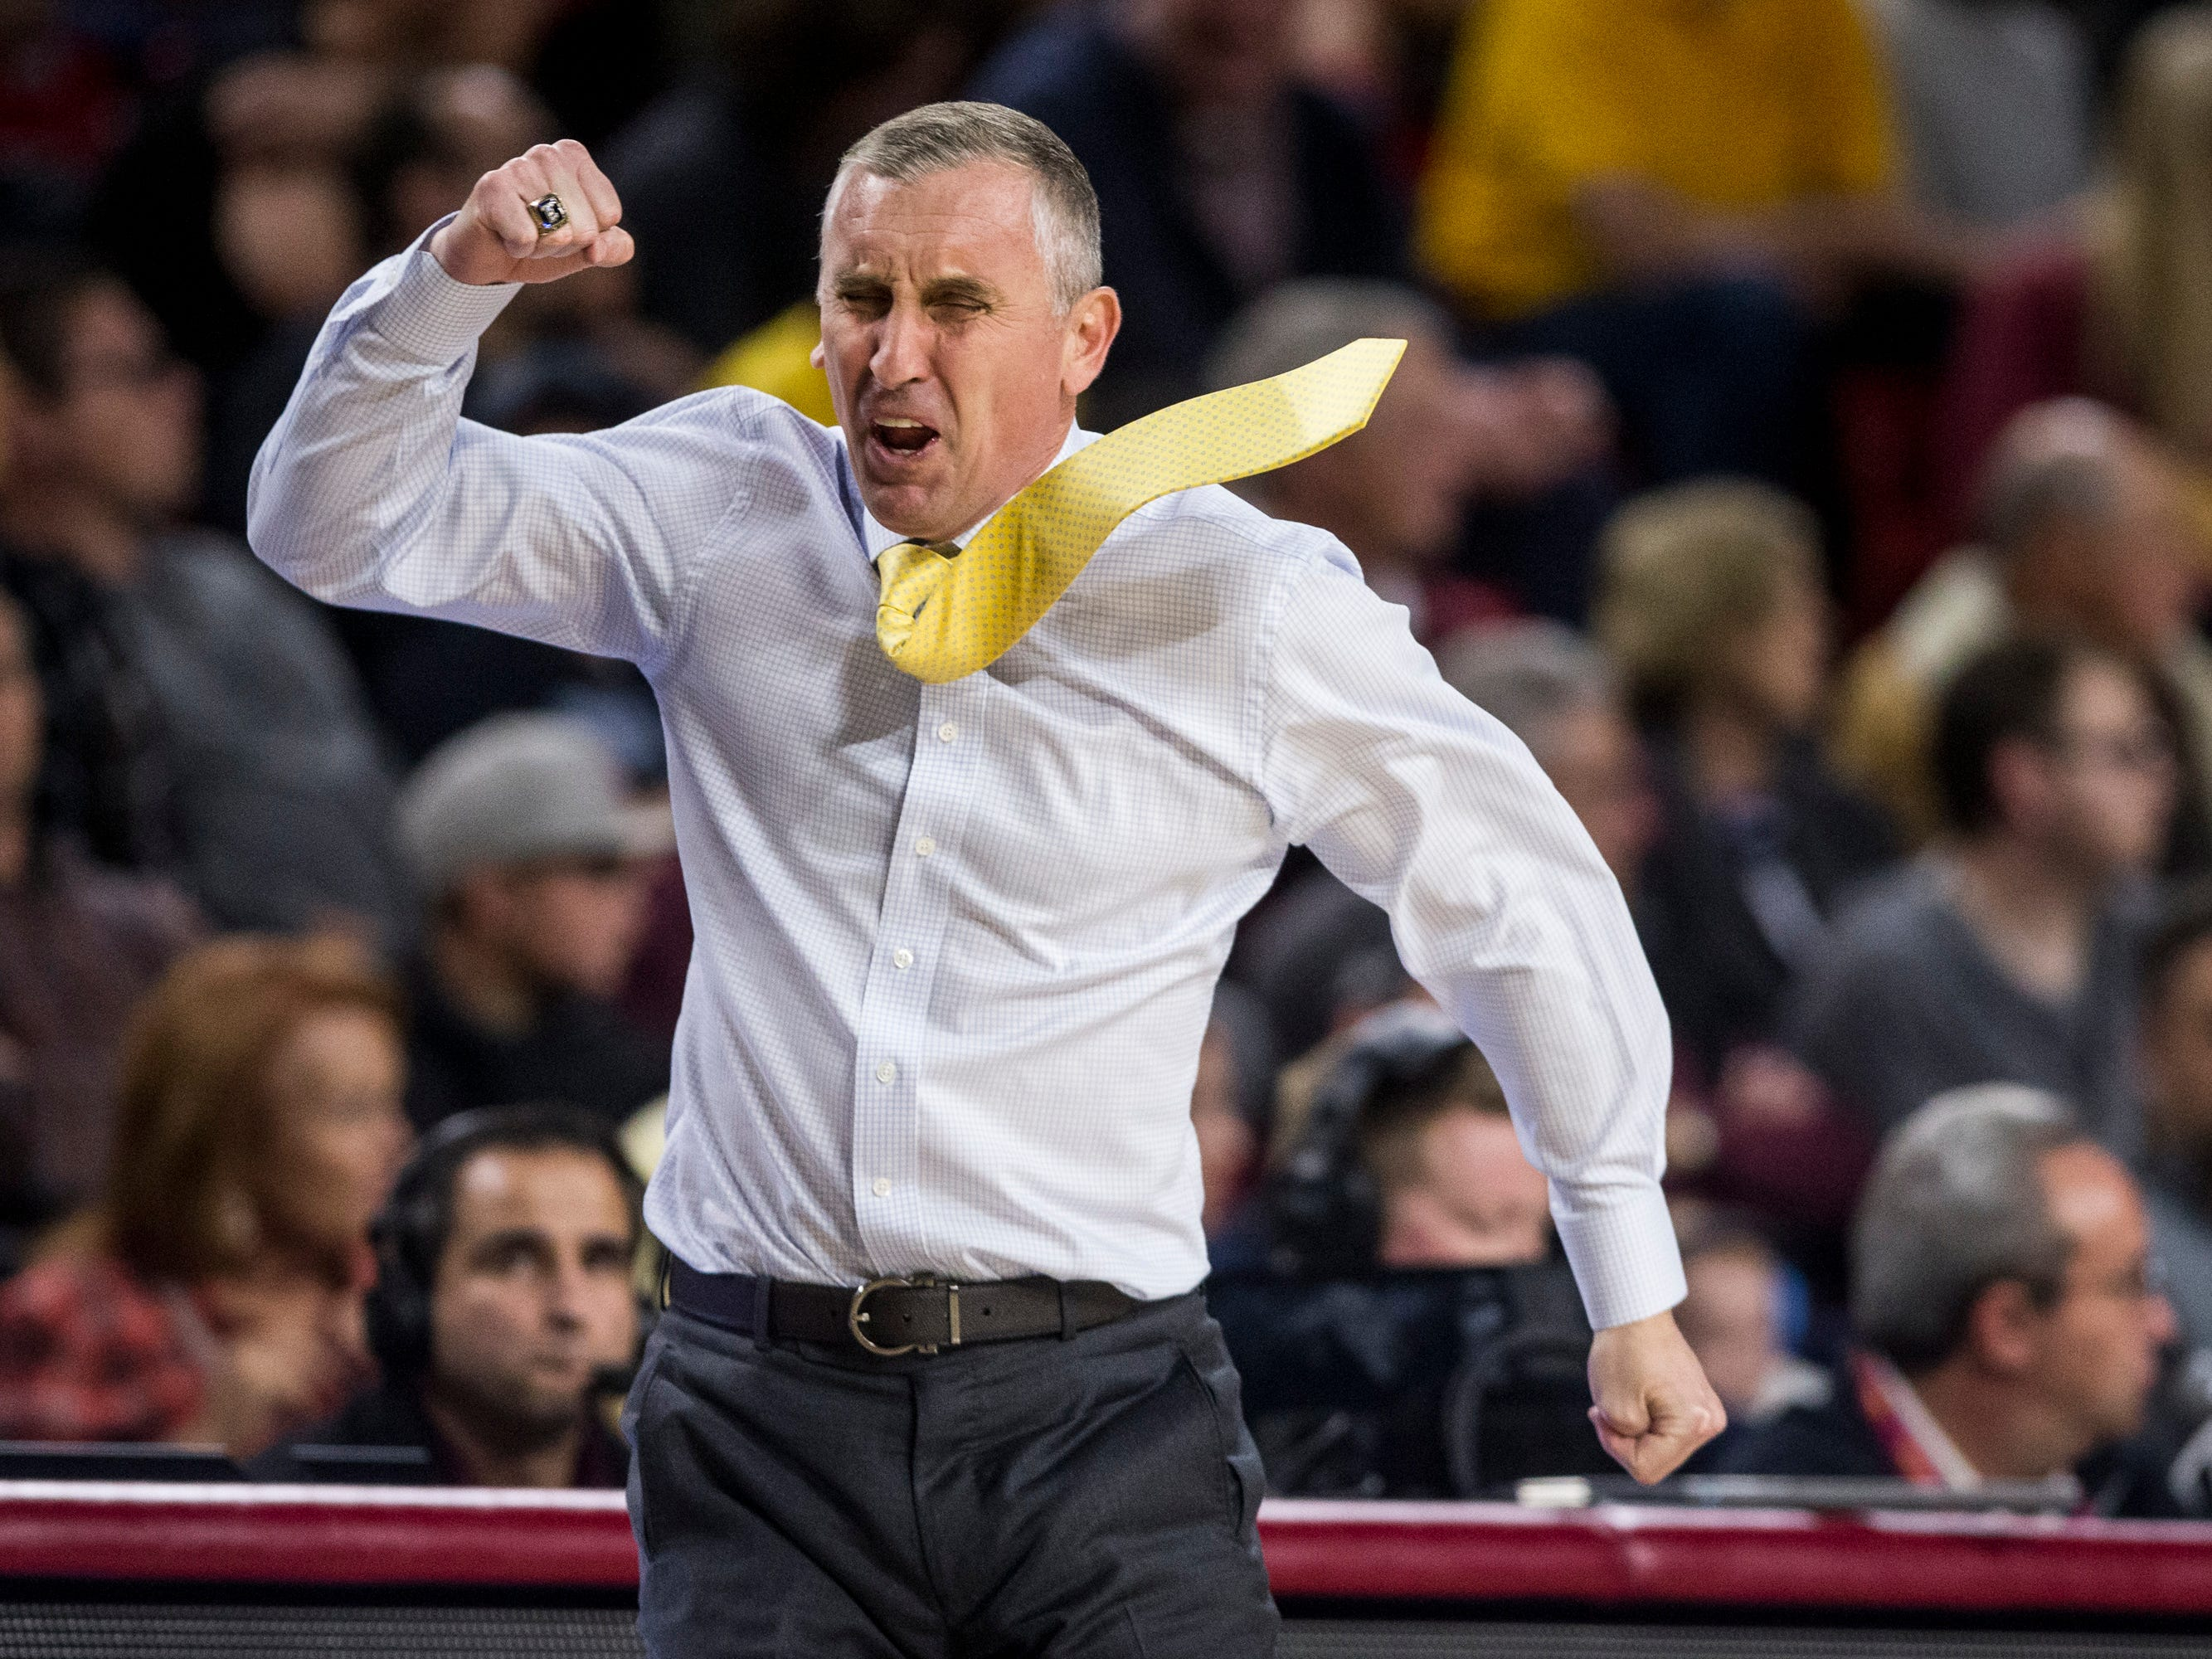 Arizona State head coach Bobby Hurley yells after a call in the second half against Texas Southern on Saturday, Dec. 1, 2018, at Wells Fargo Arena in Tempe, Ariz.